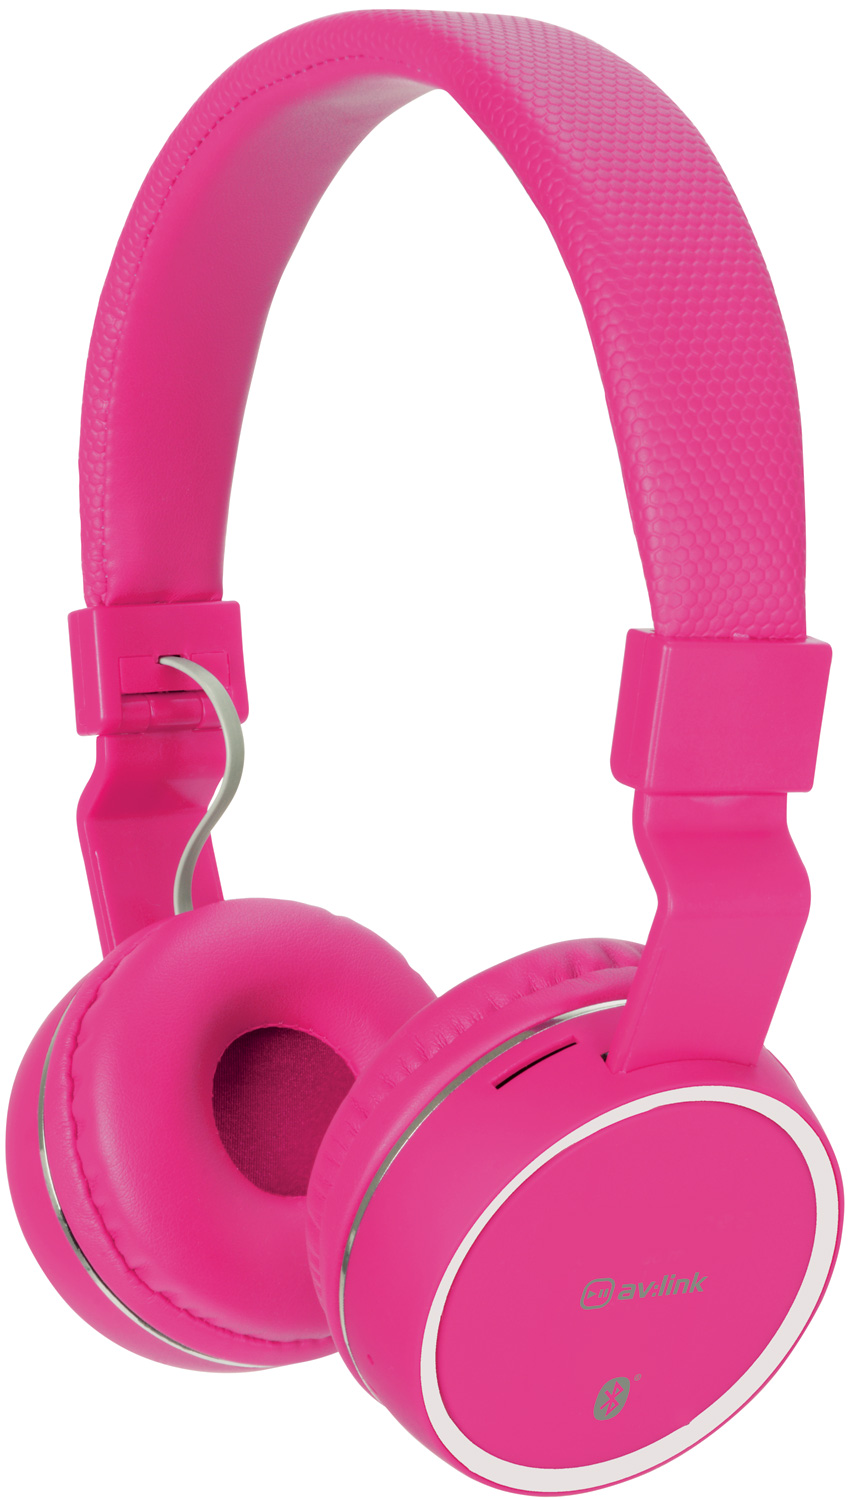 avlink Wireless Bluetooth® Headphones Pink